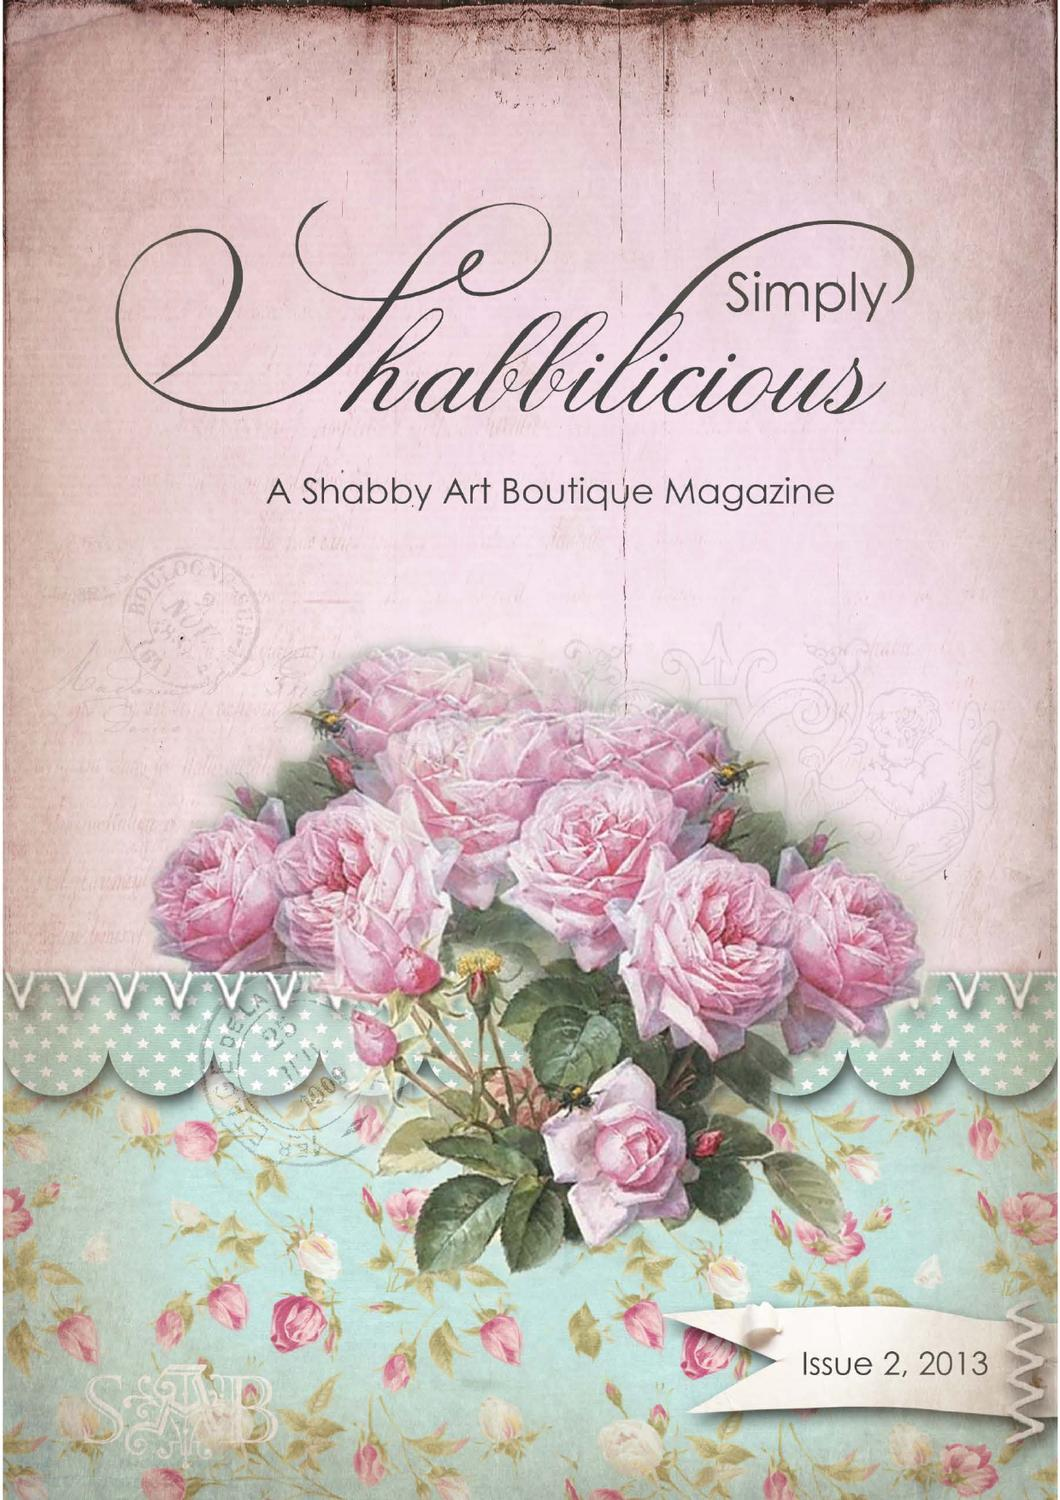 simply shabbilicious magazine issue 2 2013 by shabby art boutique by woodberry designs issuu. Black Bedroom Furniture Sets. Home Design Ideas